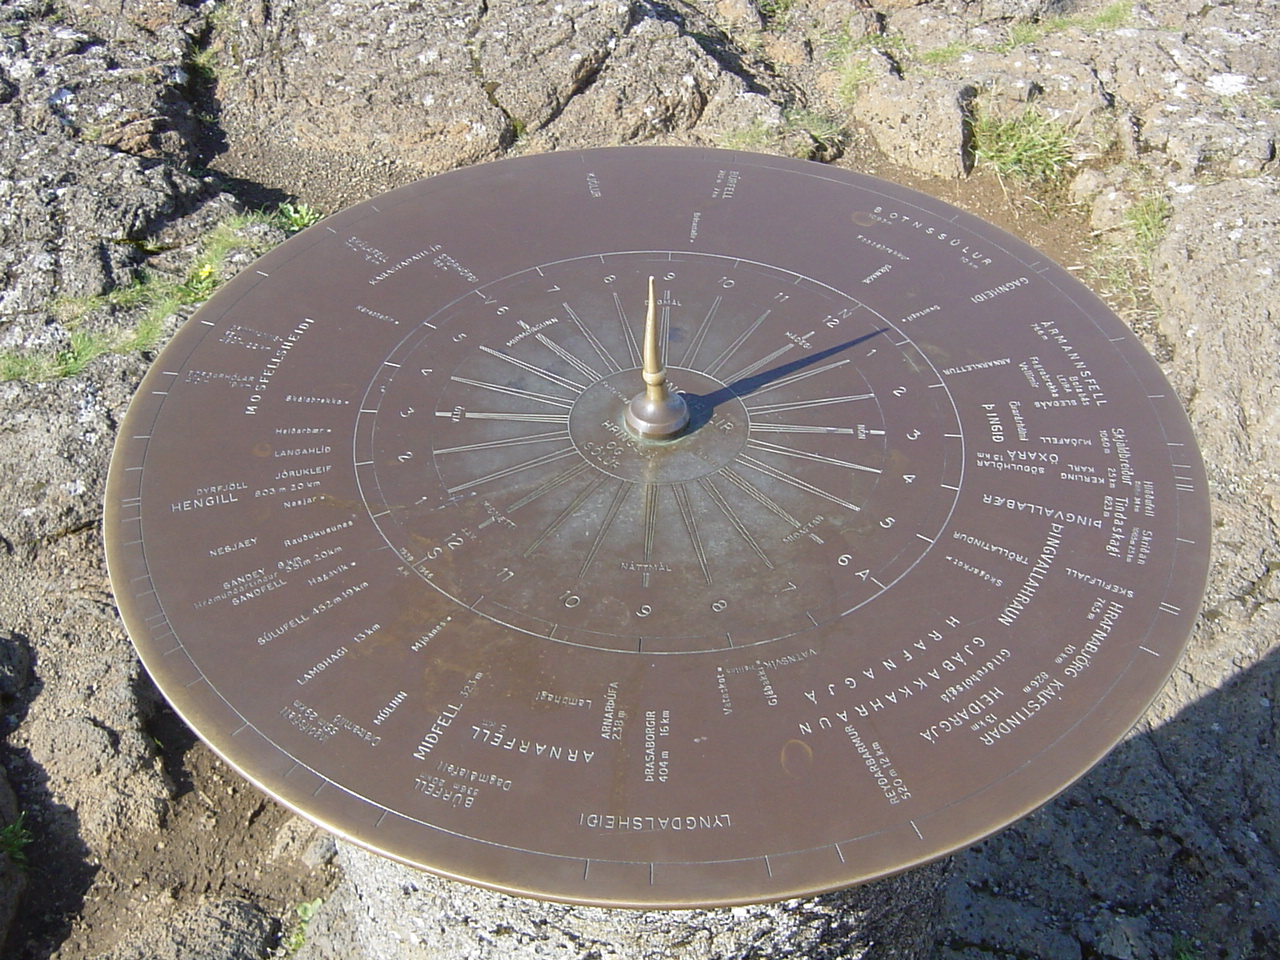 Interesting sun dial pointing out all the different views and places and their distances to them.